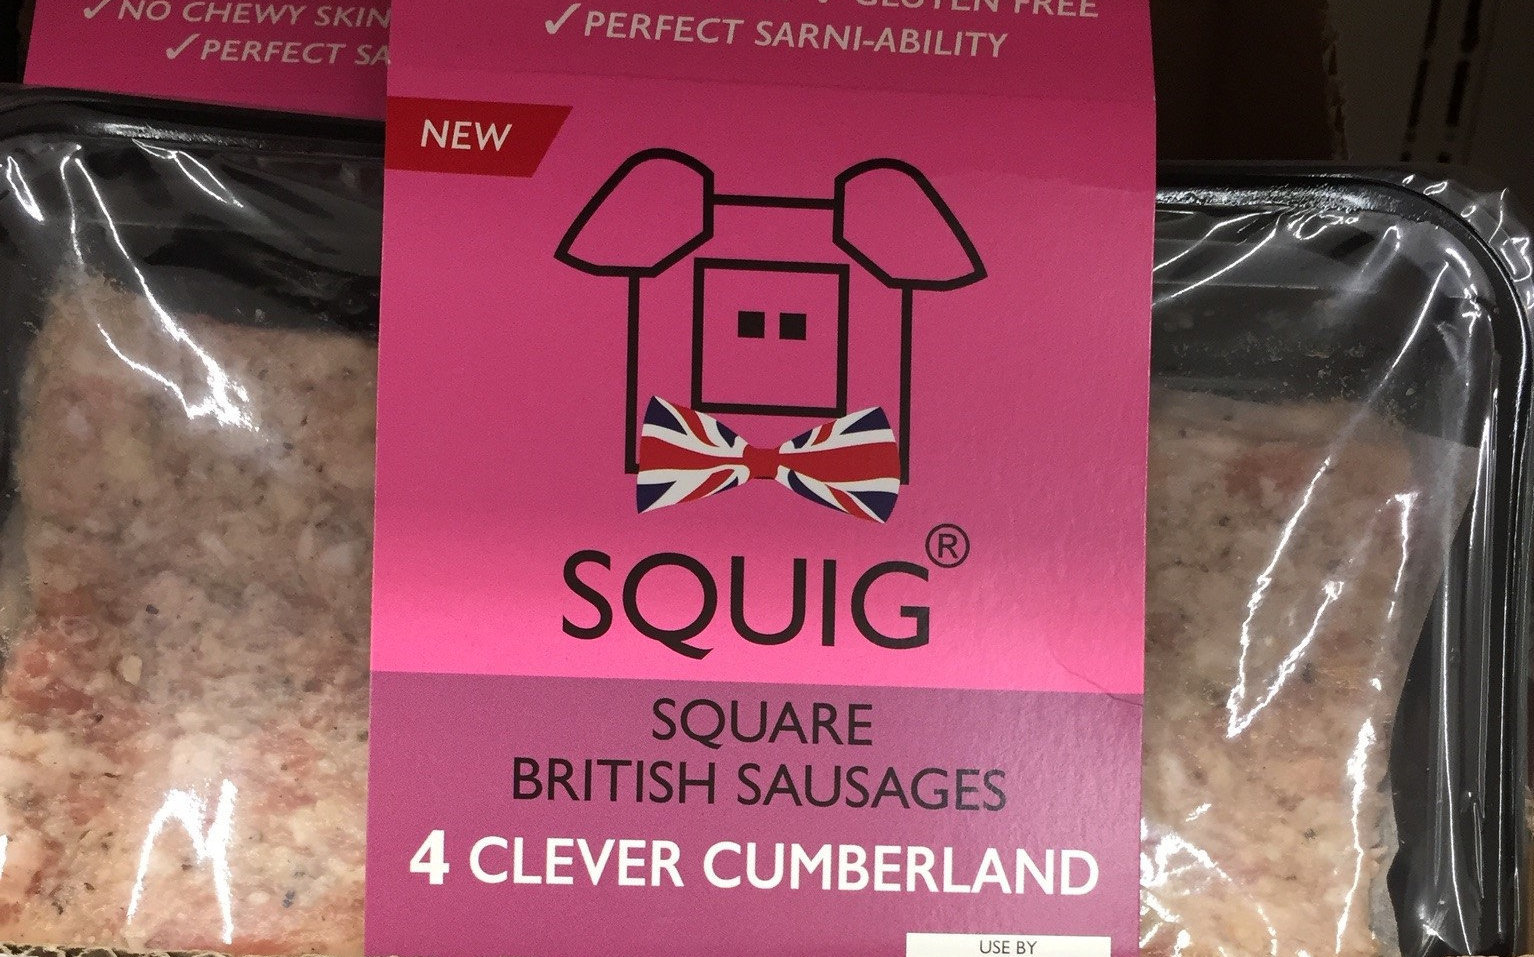 The owner of Cottom Foods said that he knew his Squigs might be compared to square sausage